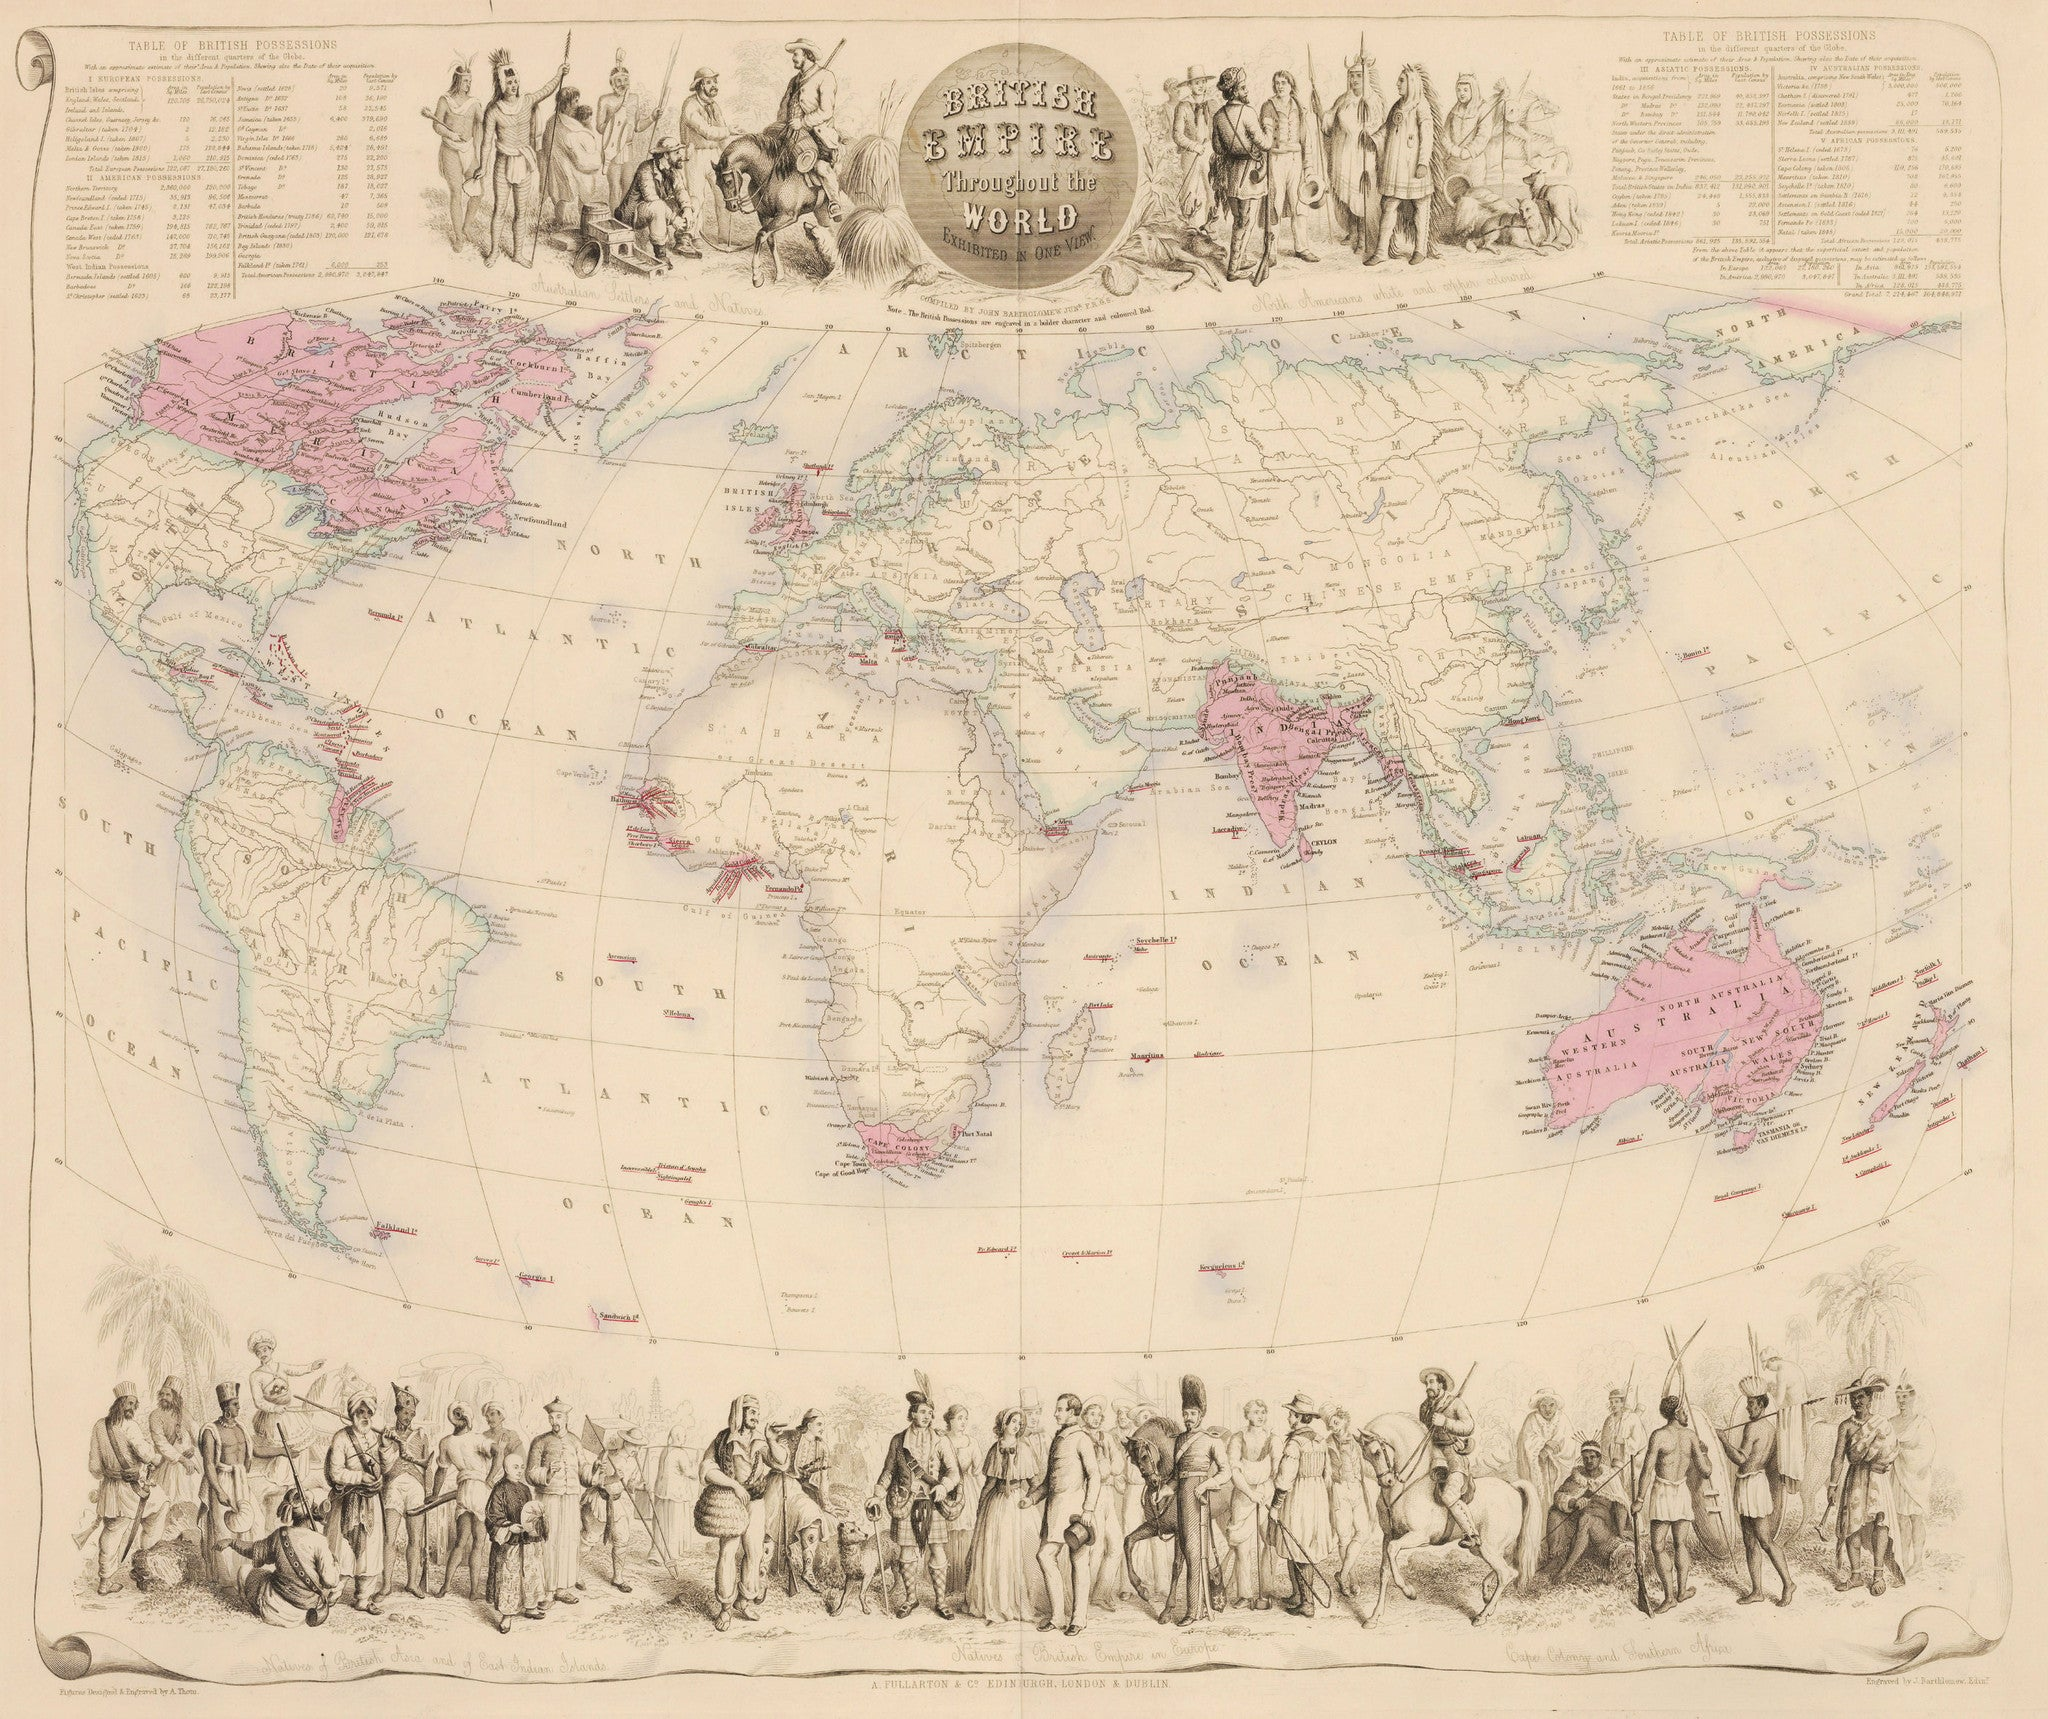 1855 British Empire Throughout the World Exhibited in One View